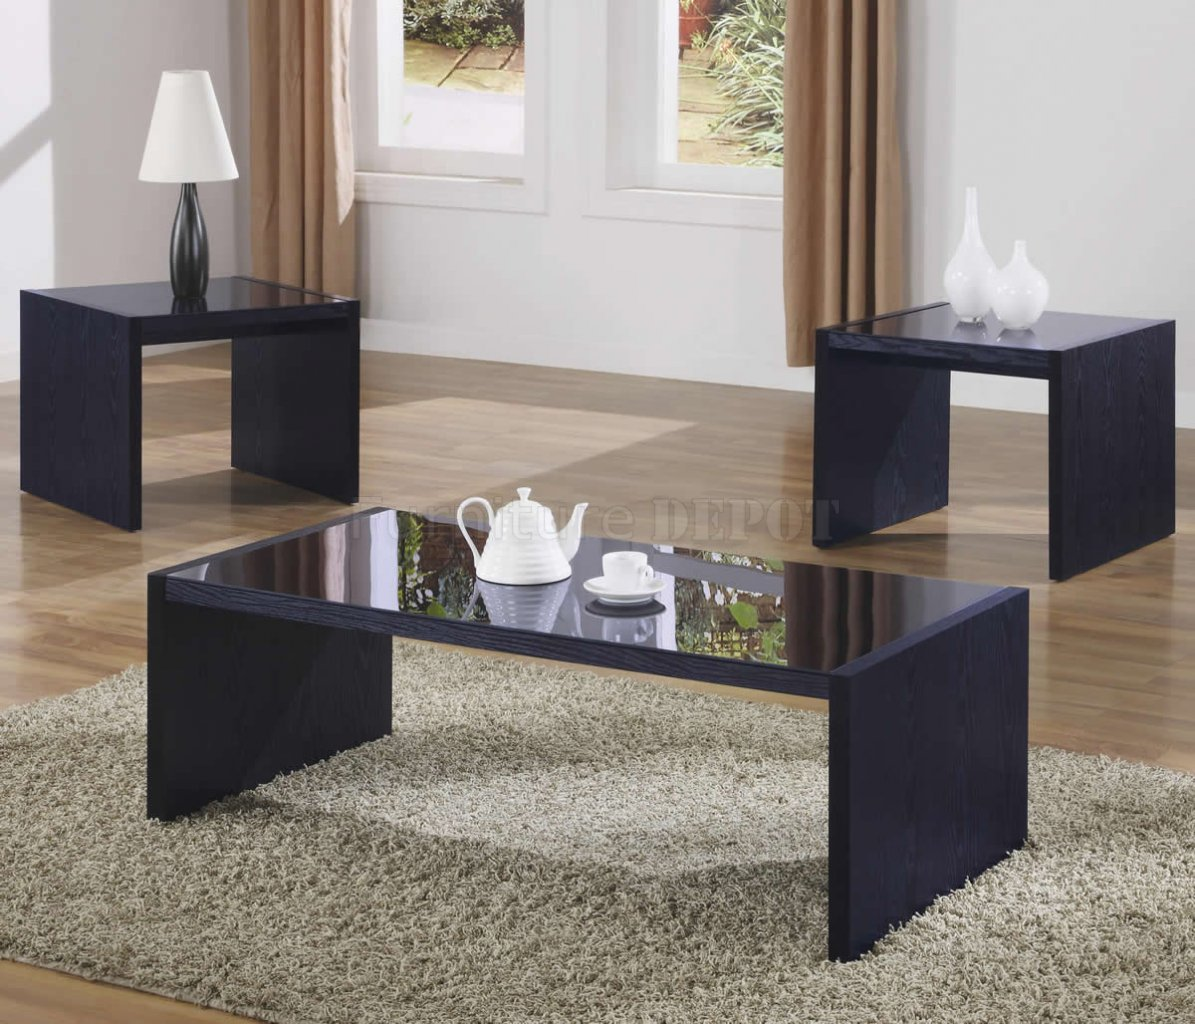 Glass Coffee Table Black Use The Largest As A Coffee Table Or Group Them For A Graphic Display (Image 7 of 9)